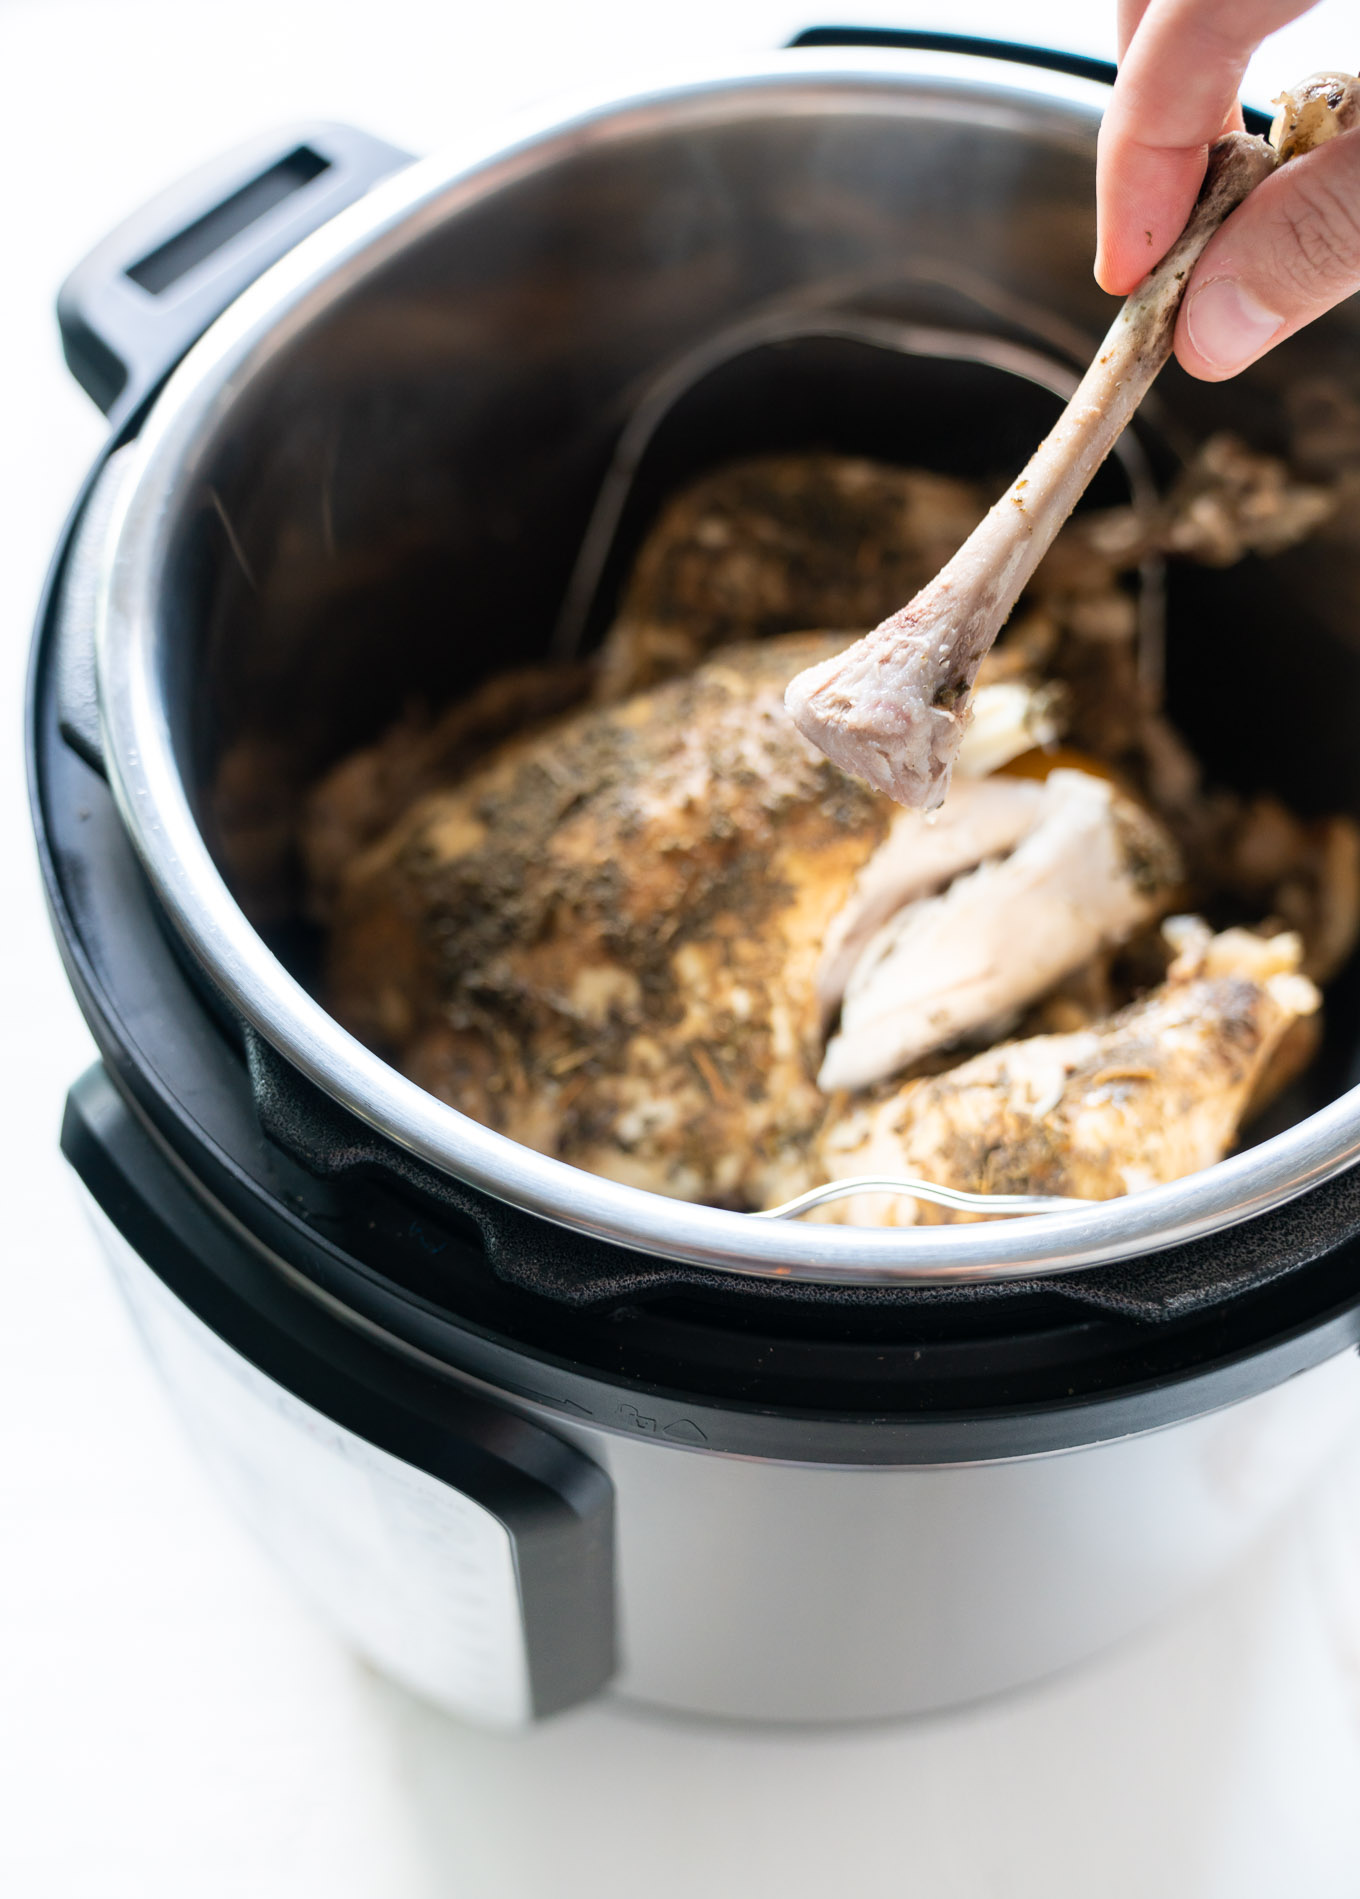 Instant Pot Whole Chicken shown with bone